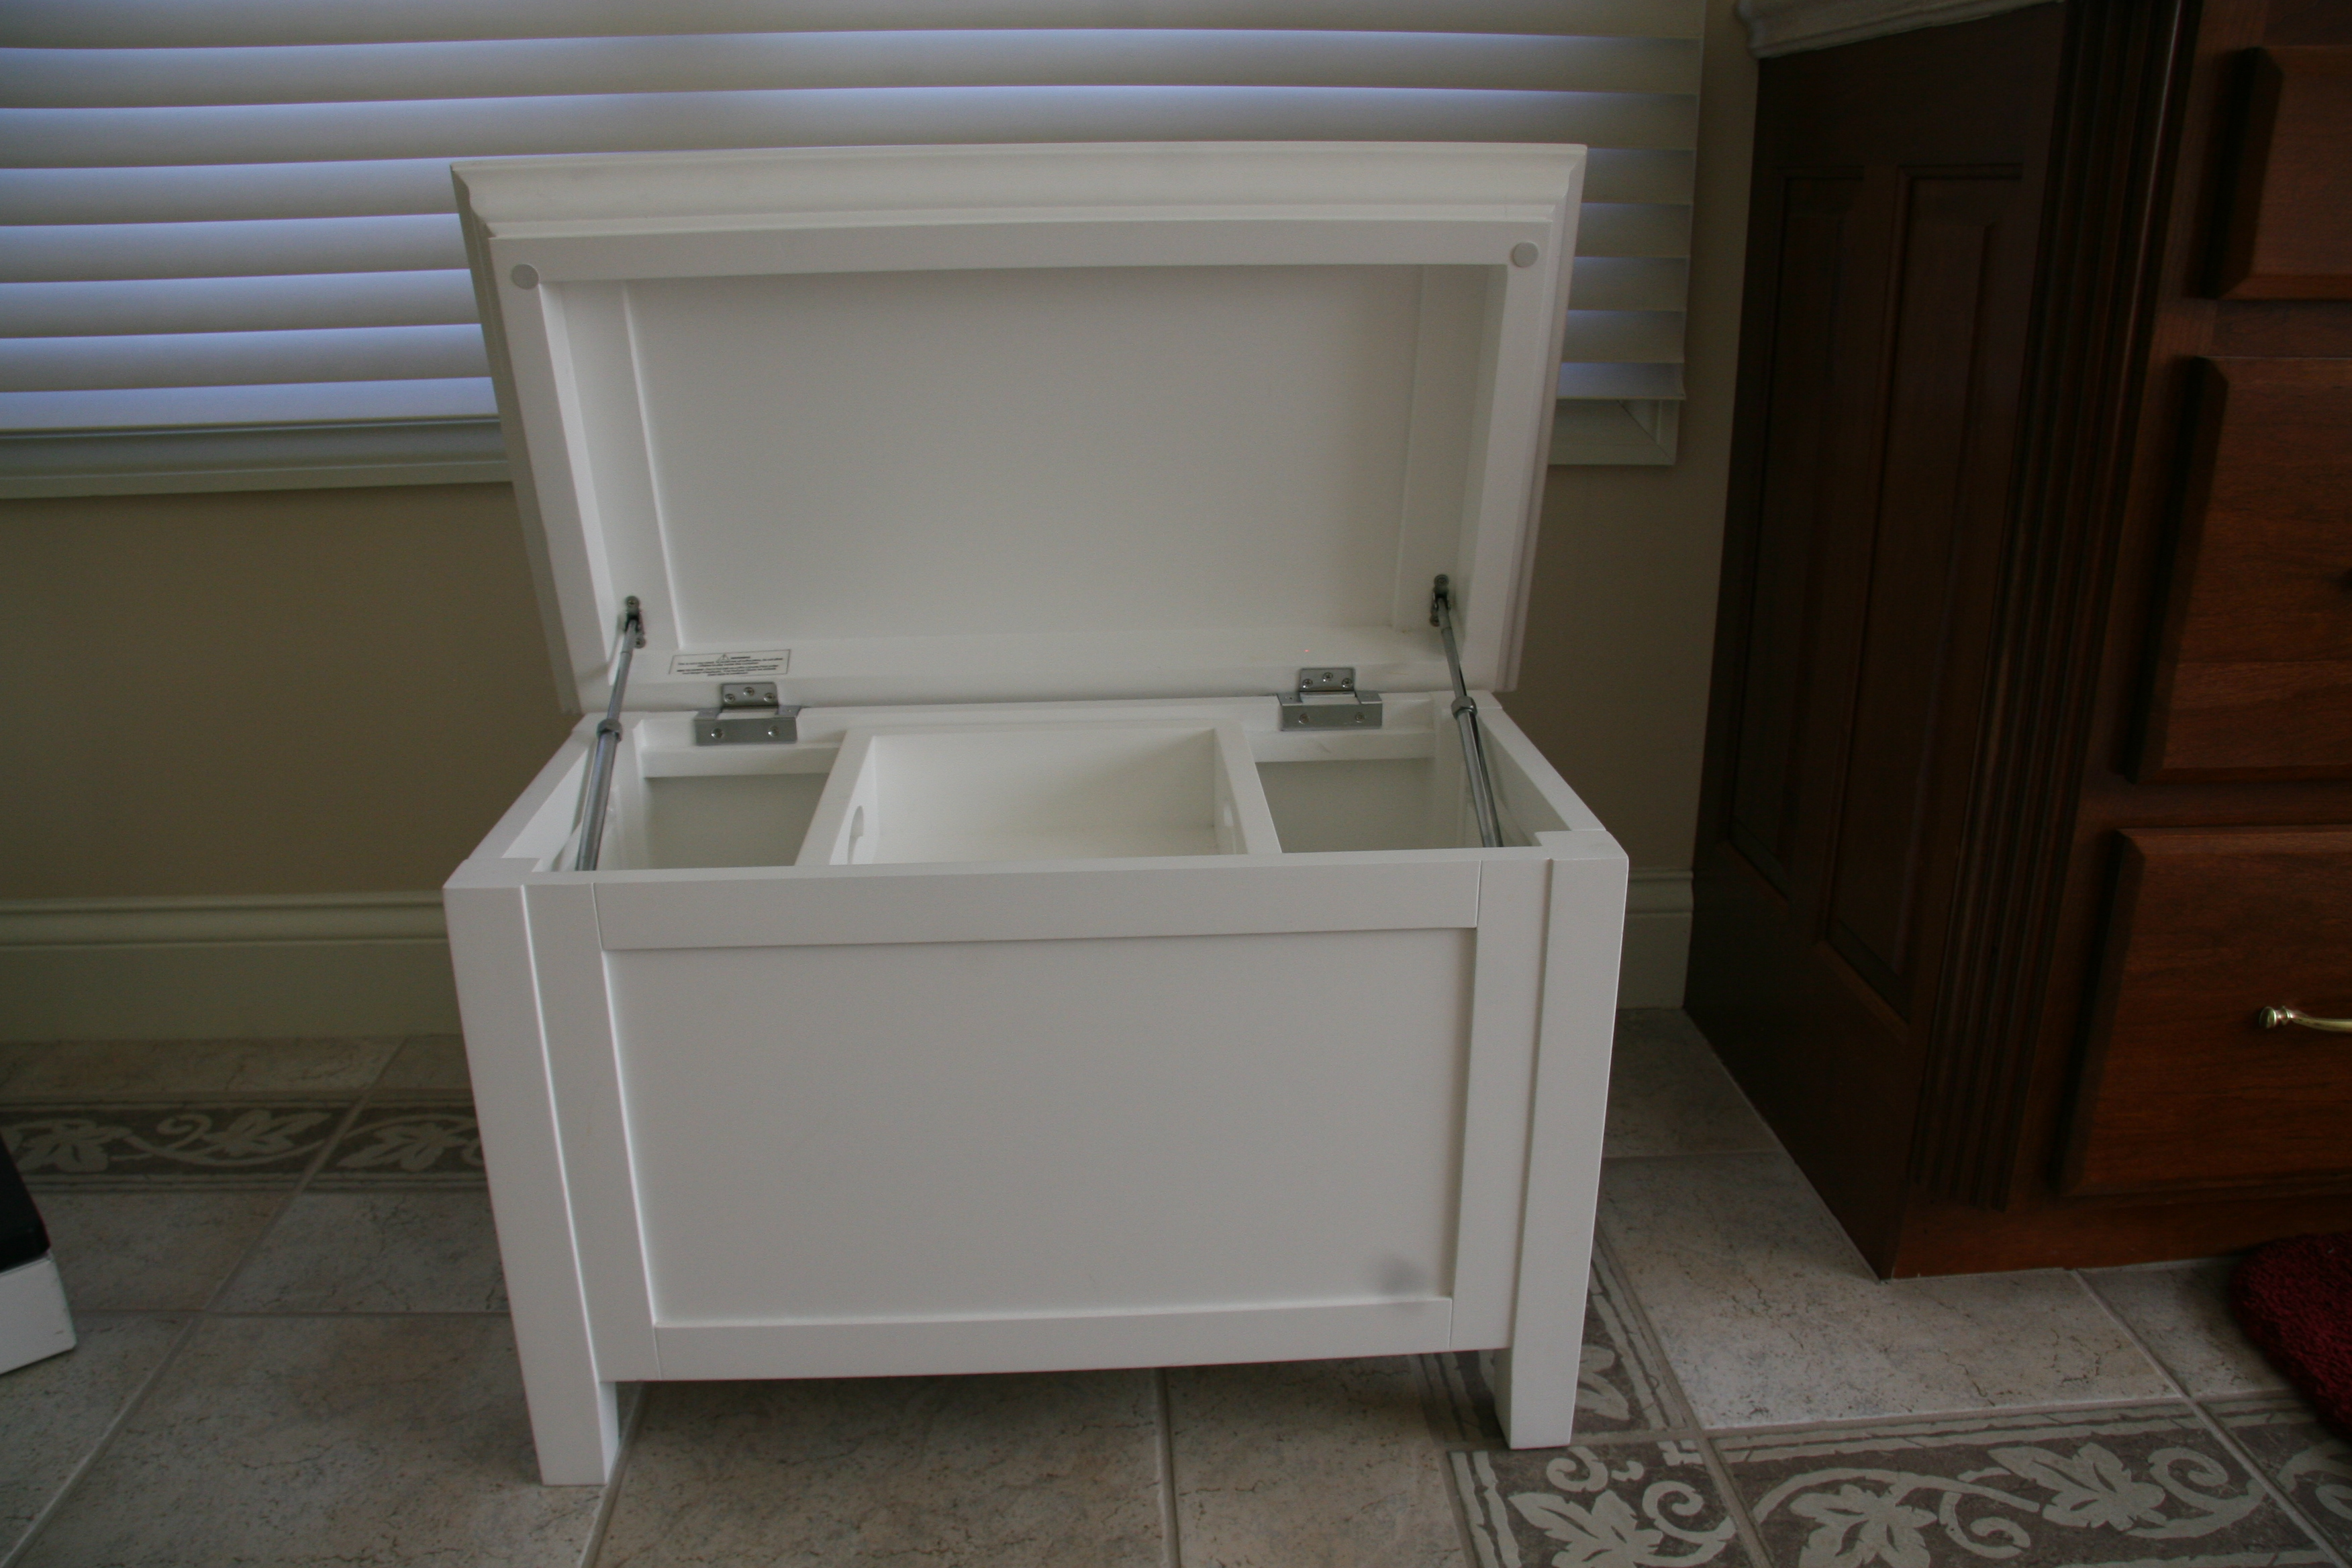 C Table Ikea Pottery Barn White Storage Bench | Goodstuffcheapstl's Blog